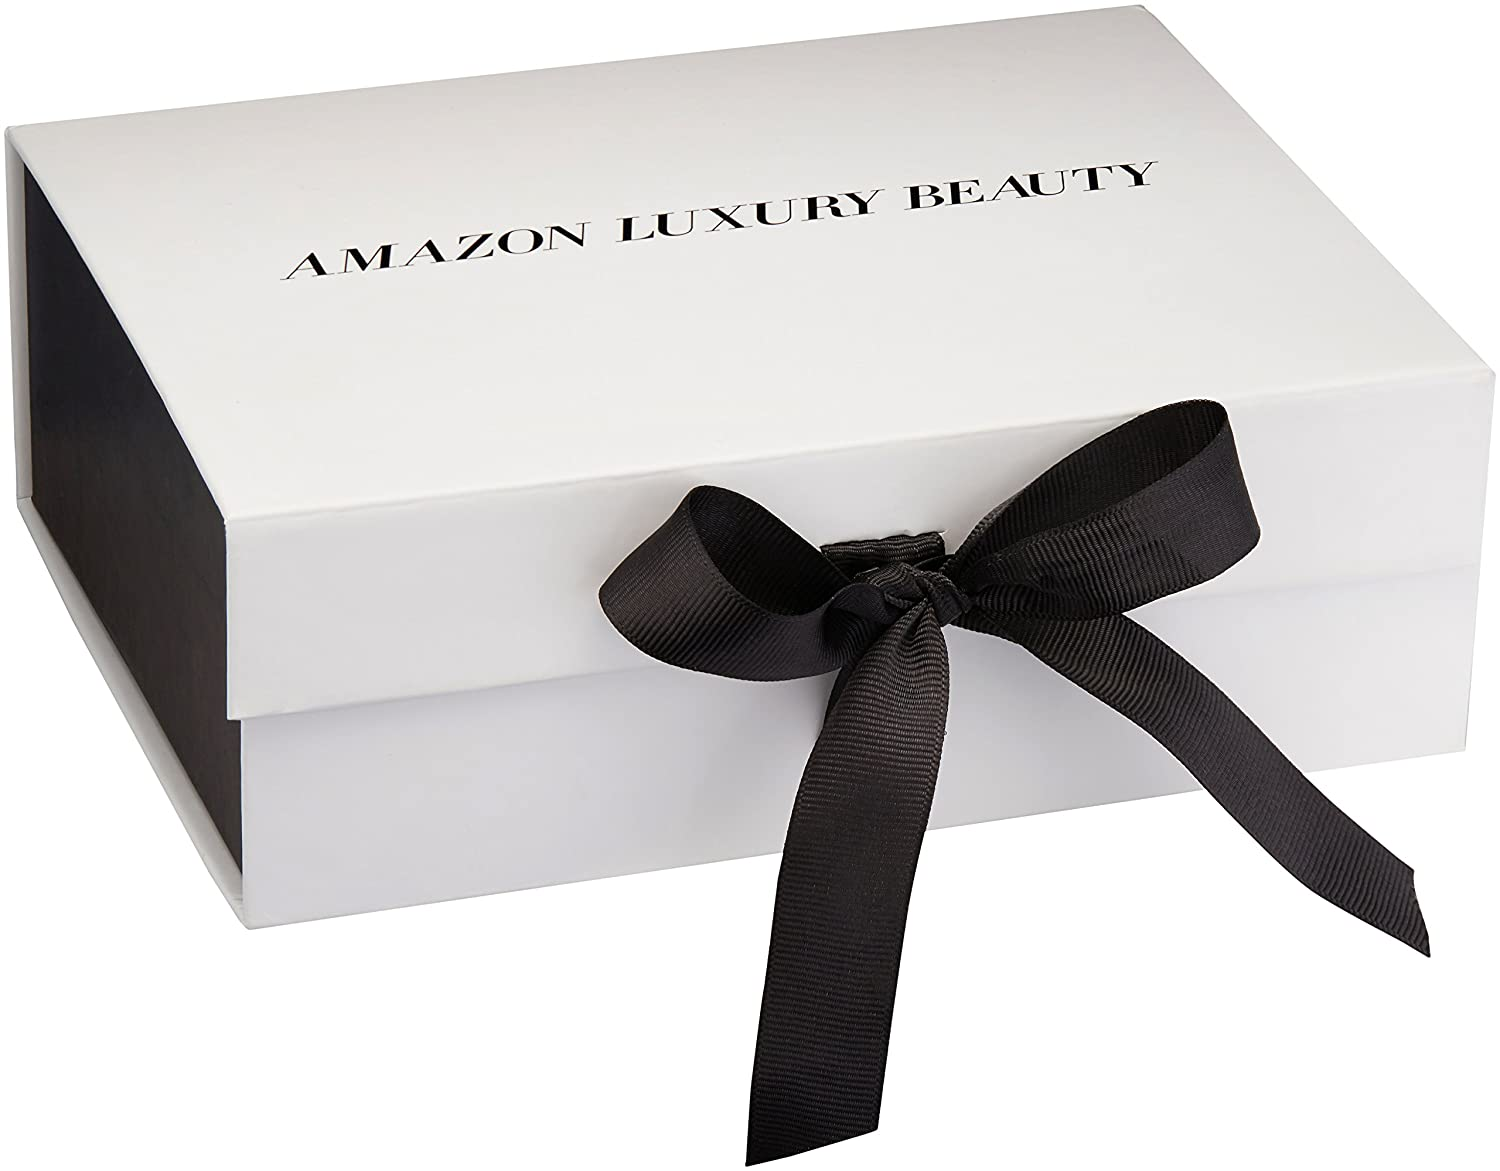 Amazon.com Luxury Beauty Box s&les may vary ($19.99 credit with purchase of select Luxury Beauty products) Luxury Beauty  sc 1 st  Amazon.com & Amazon.com: Luxury Beauty Box samples may vary ($19.99 credit ... Aboutintivar.Com